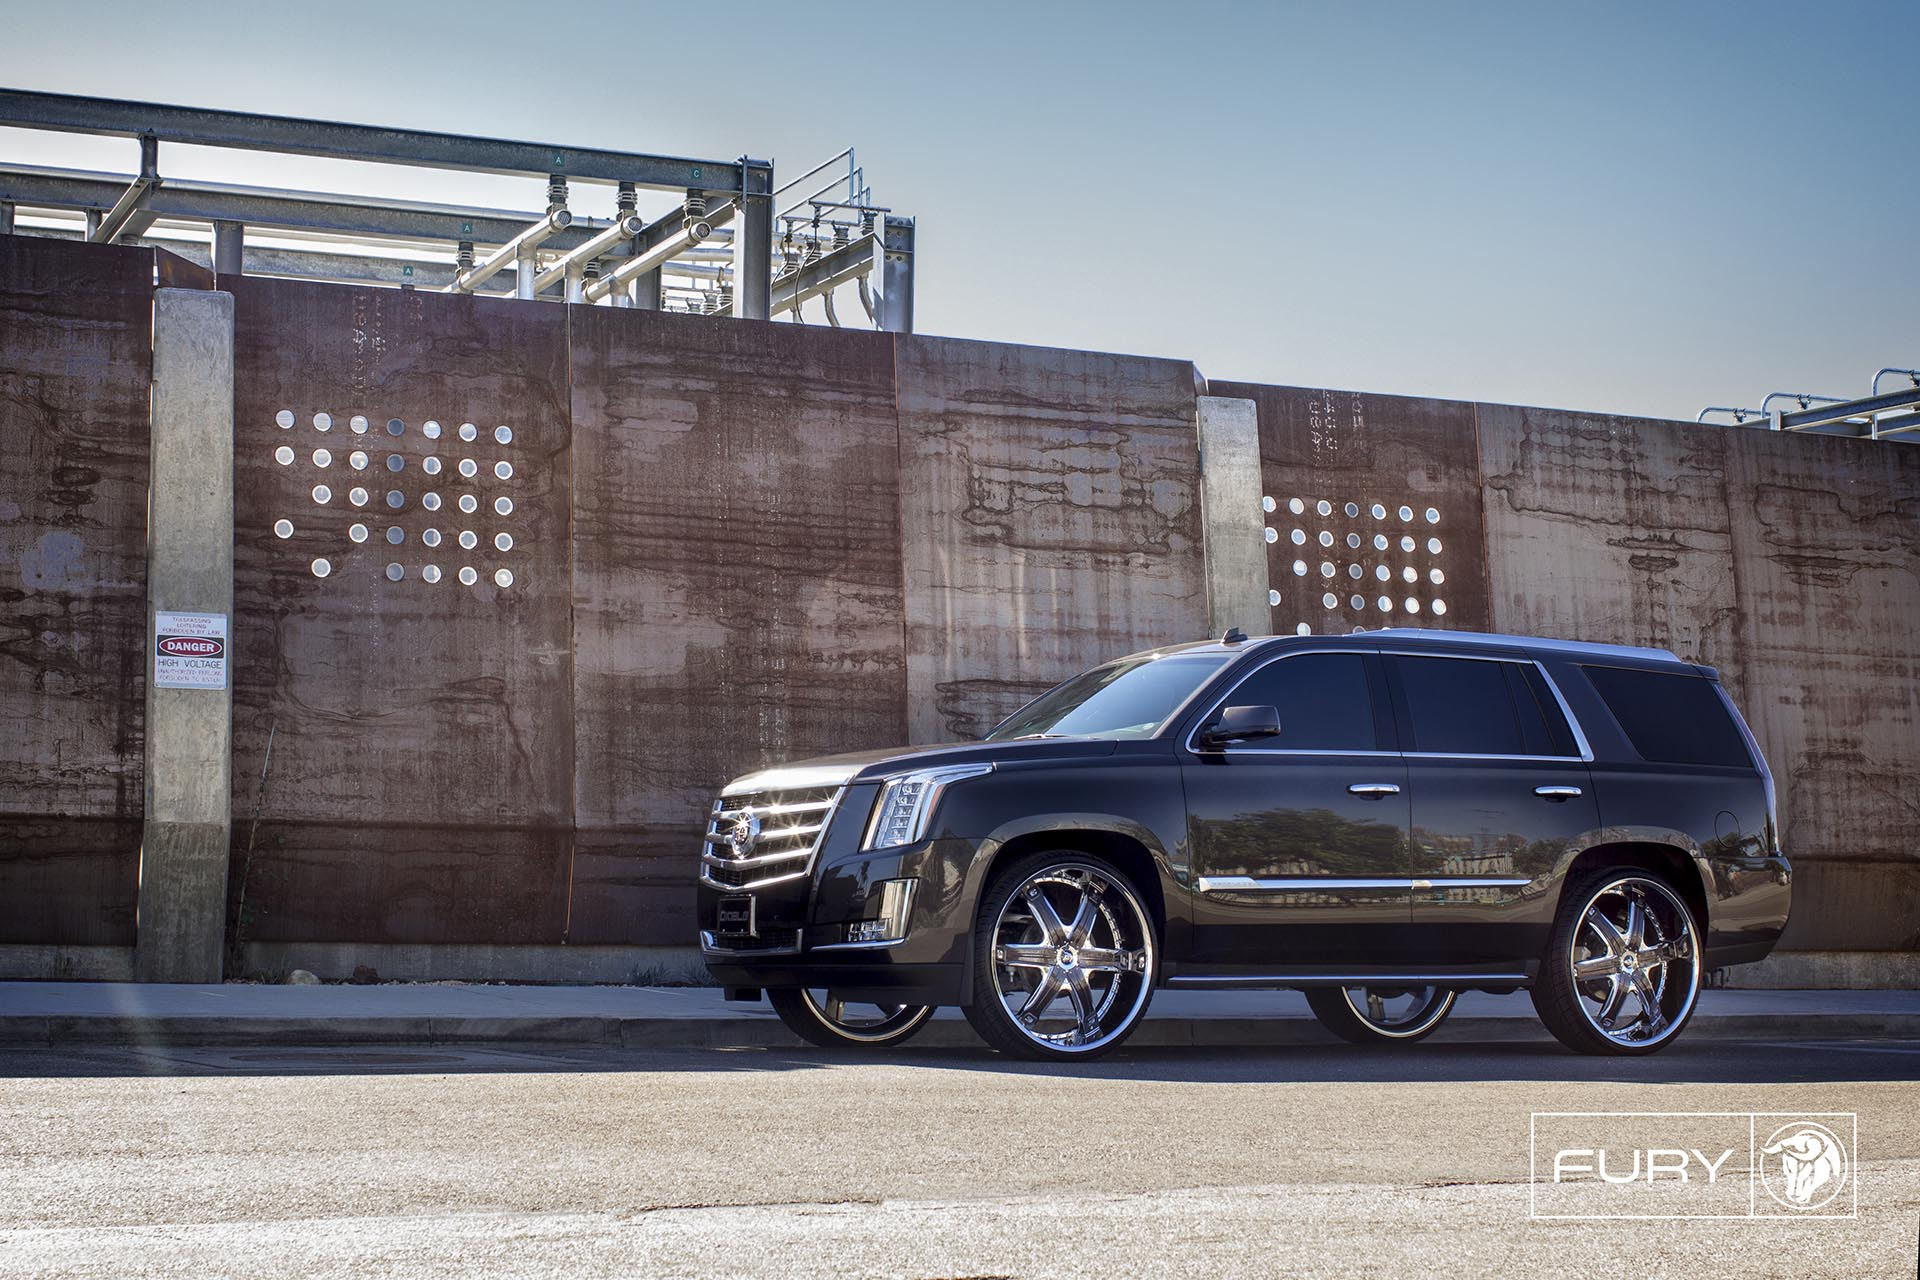 Chrome Diablo Fury Wheels on a Cadillac Escalade